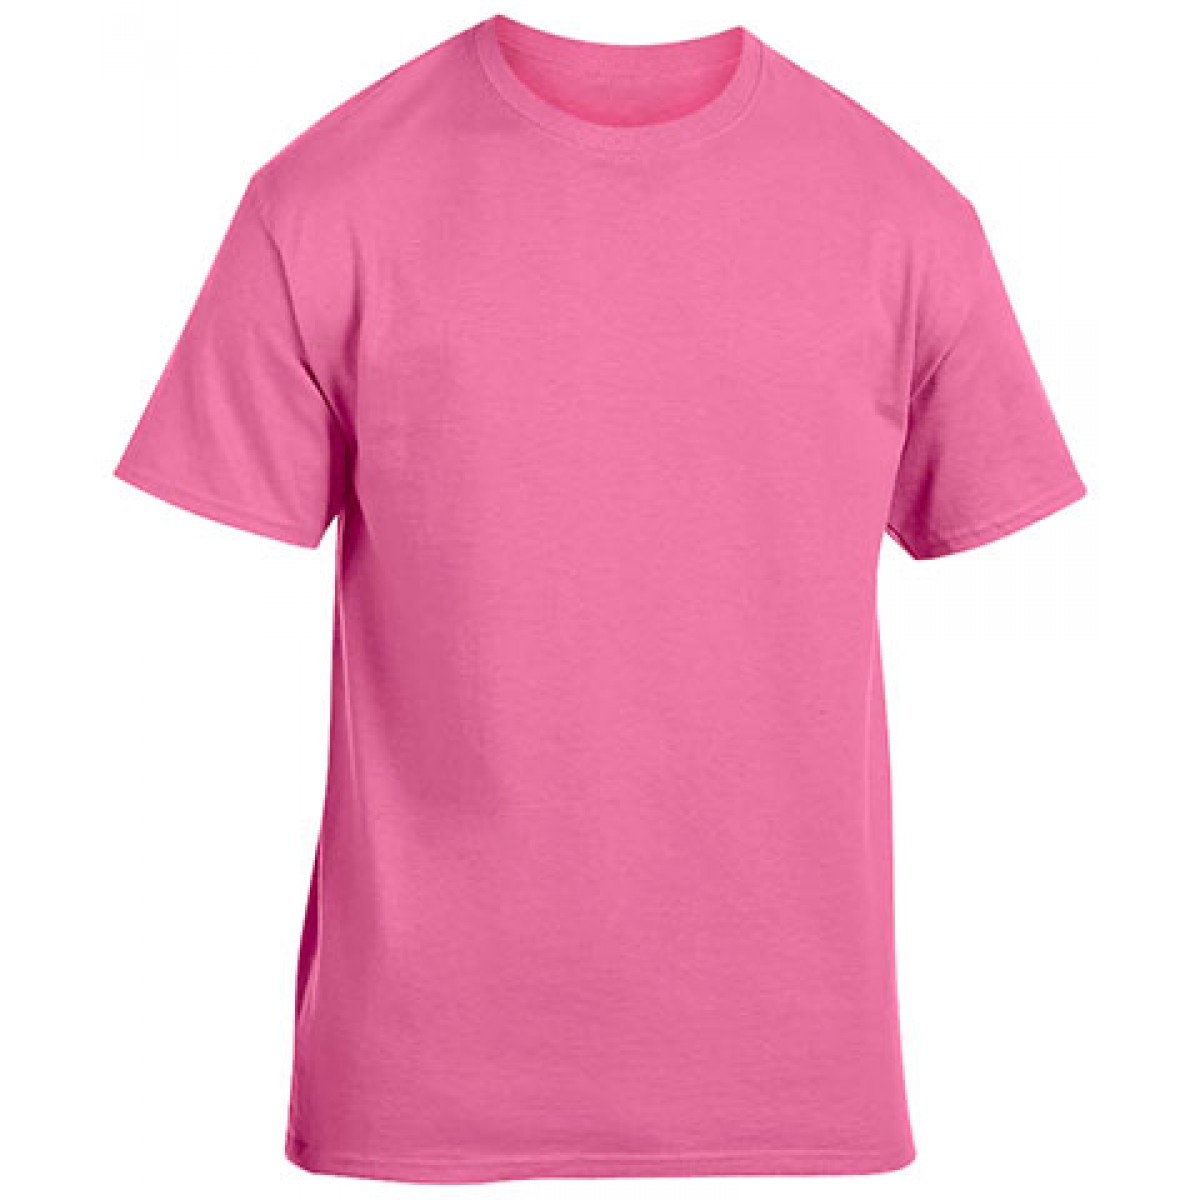 Cotton Short Sleeve T-Shirt-Safety Pink-XL